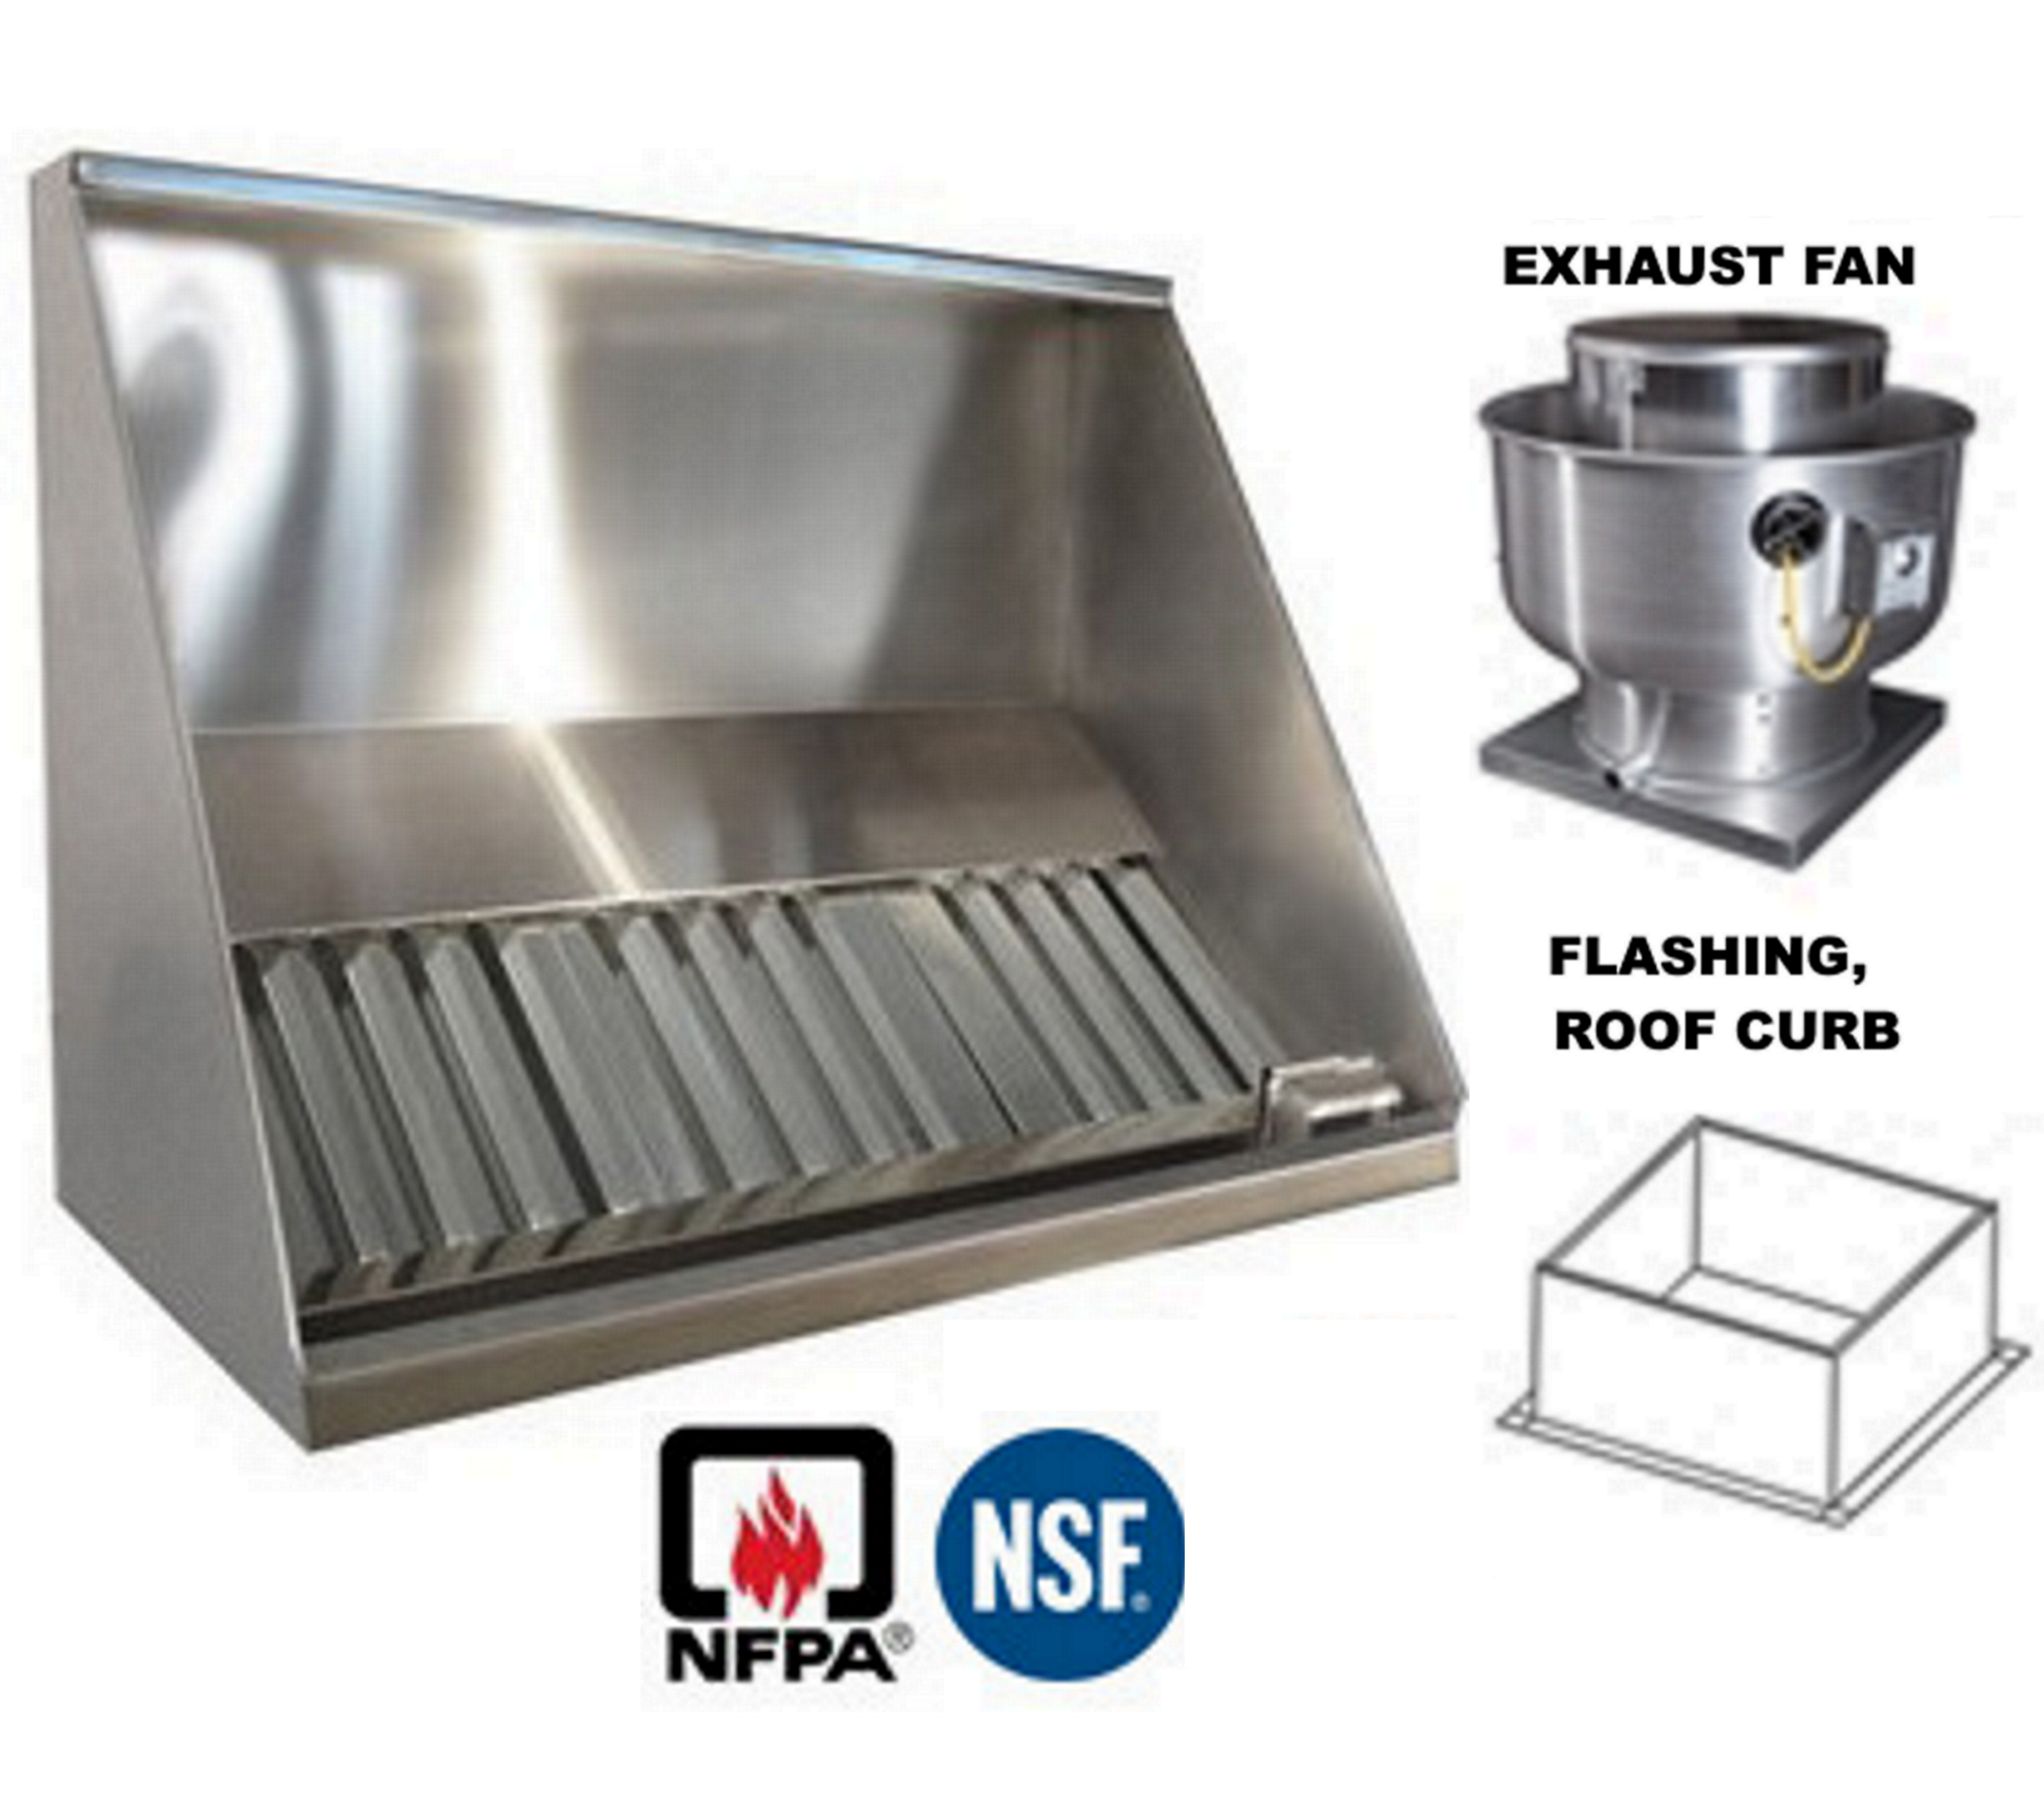 Exhaust Hoods Product ~ Jrsvhc ff concession exhaust vent hood shallow front